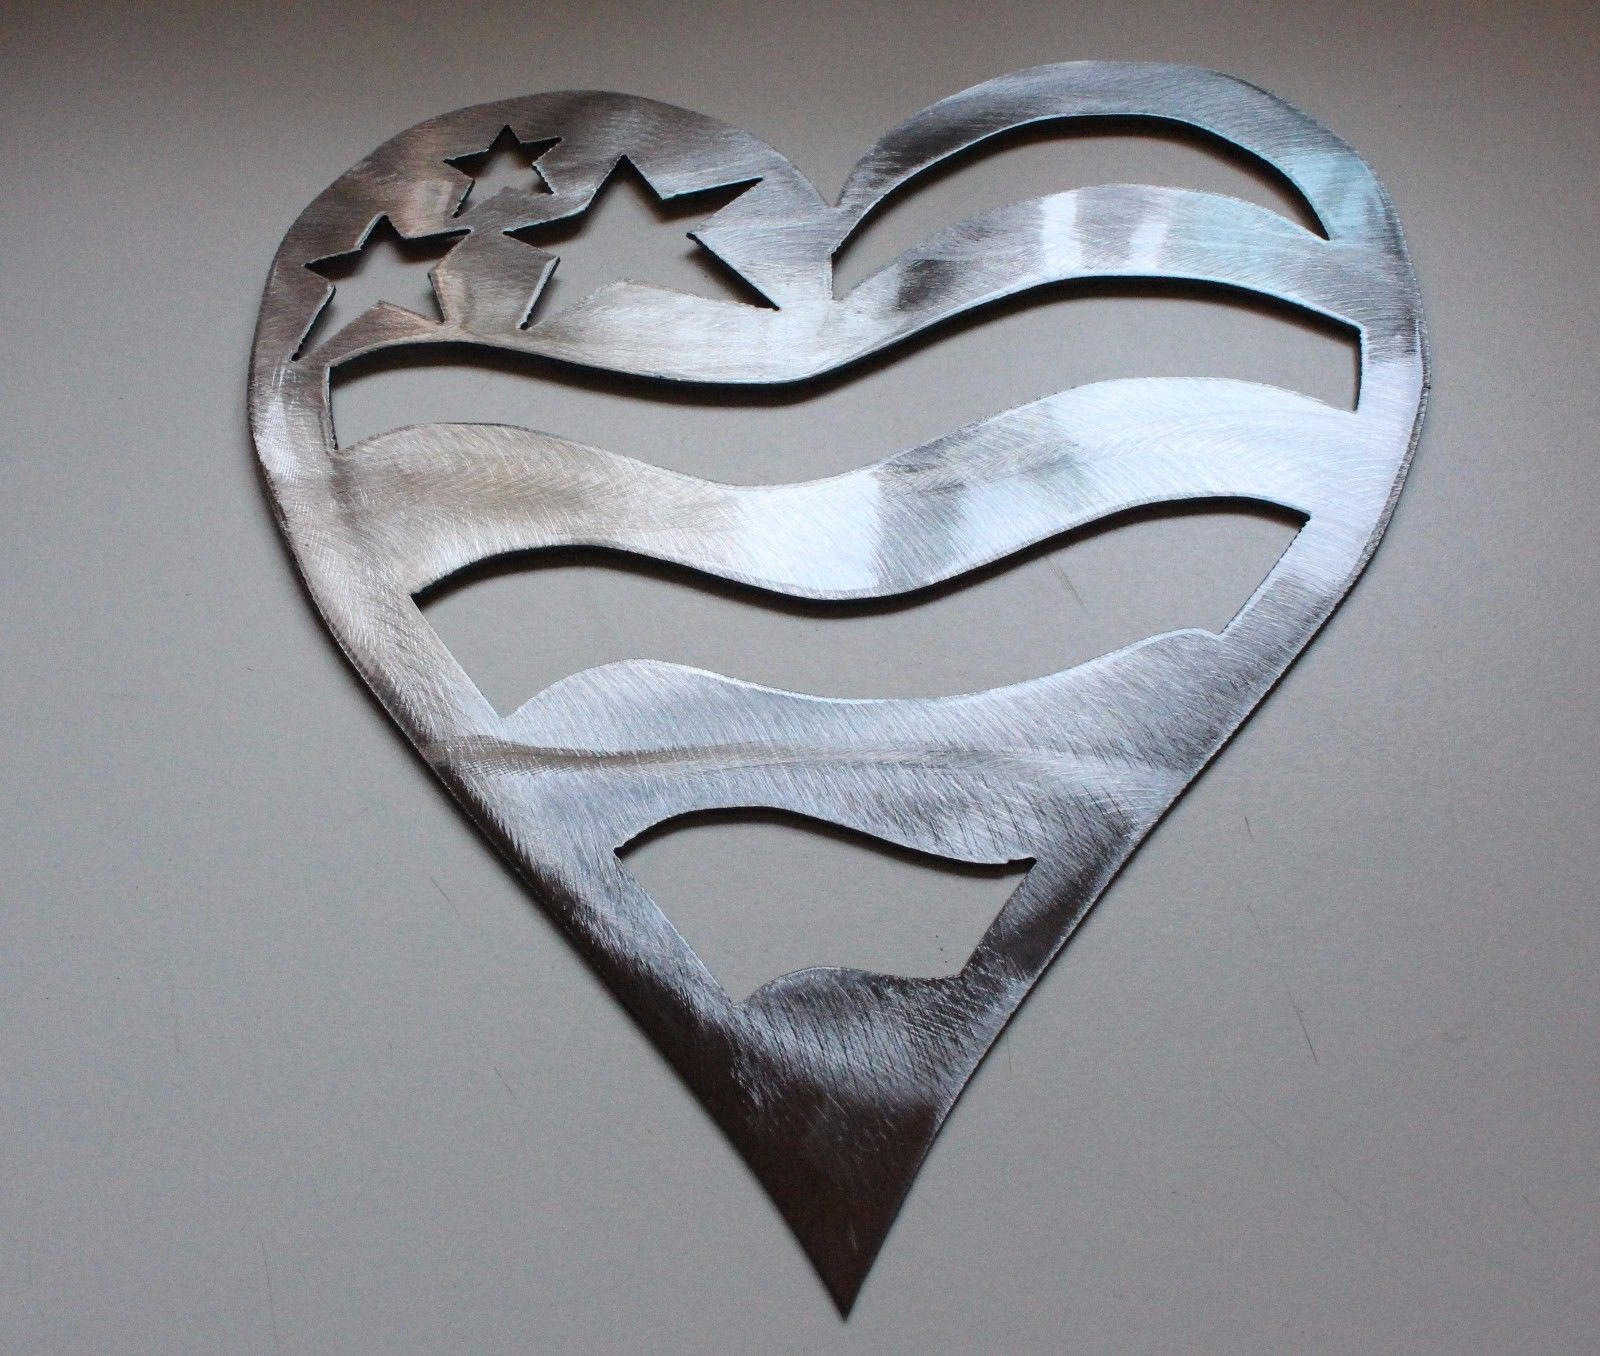 Stars and stripes silver heart metal wall art decor 7 Stars and stripes home decor